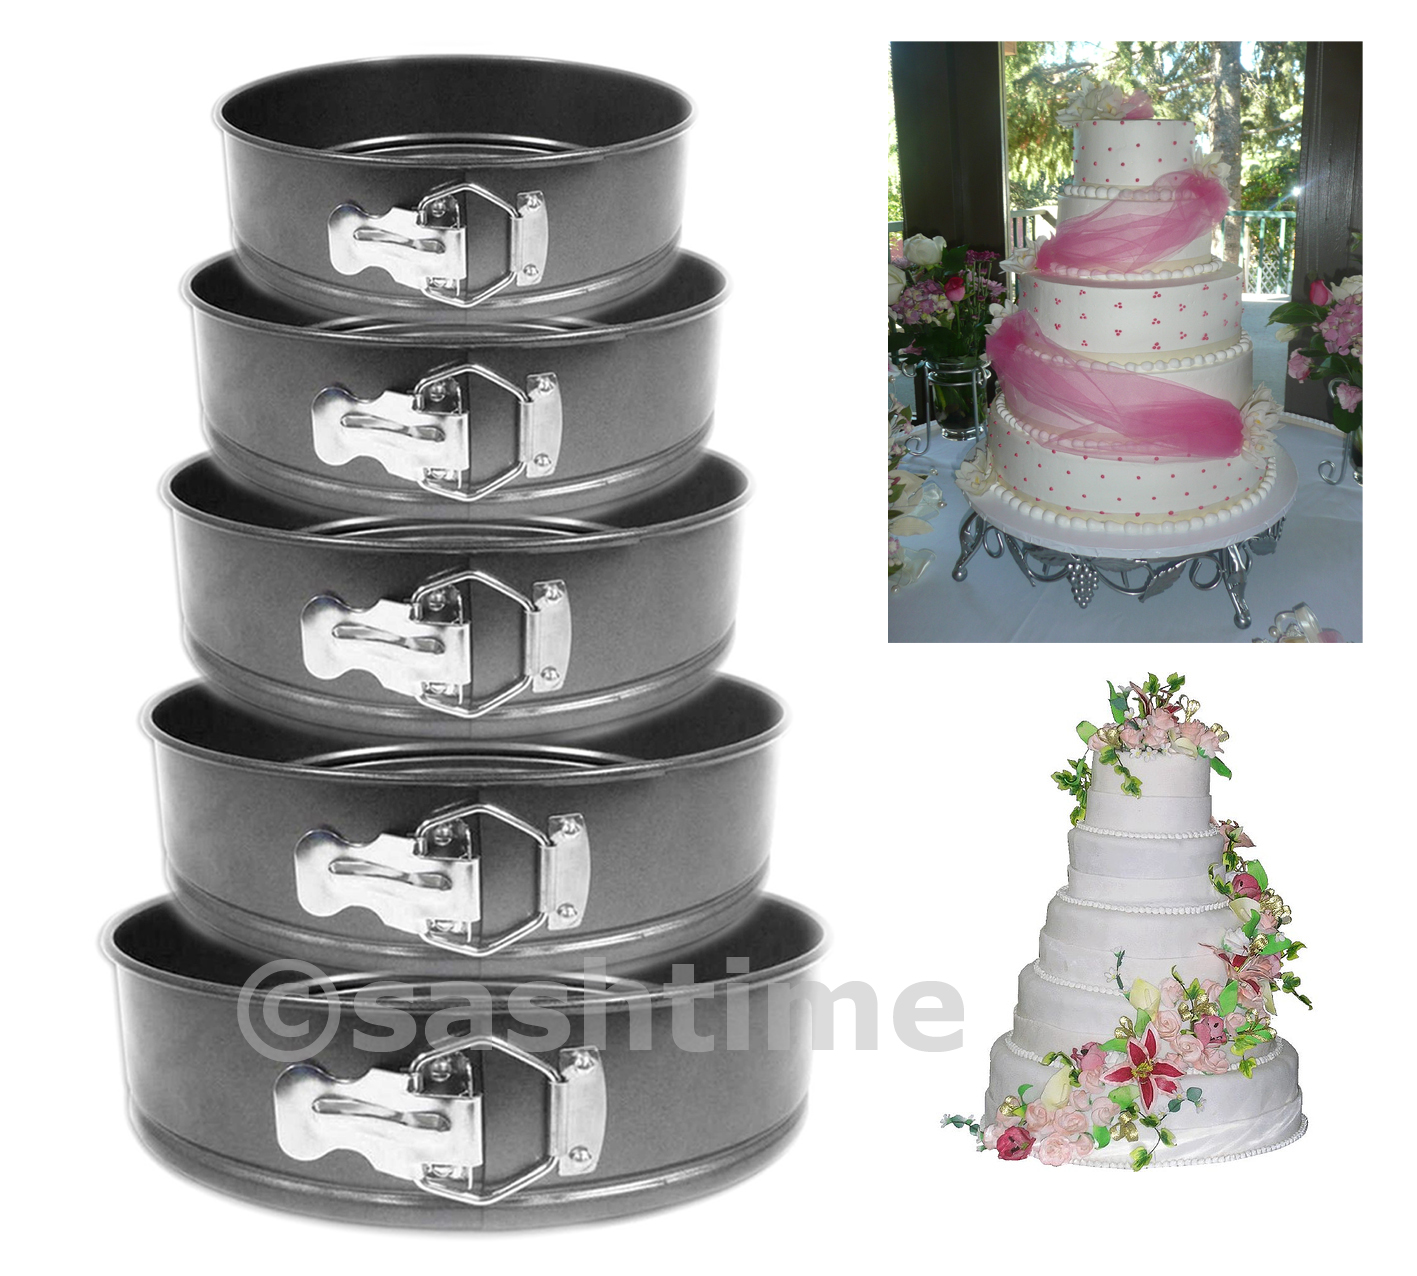 springform cake pan baking bake round tray tins wedding party ebay